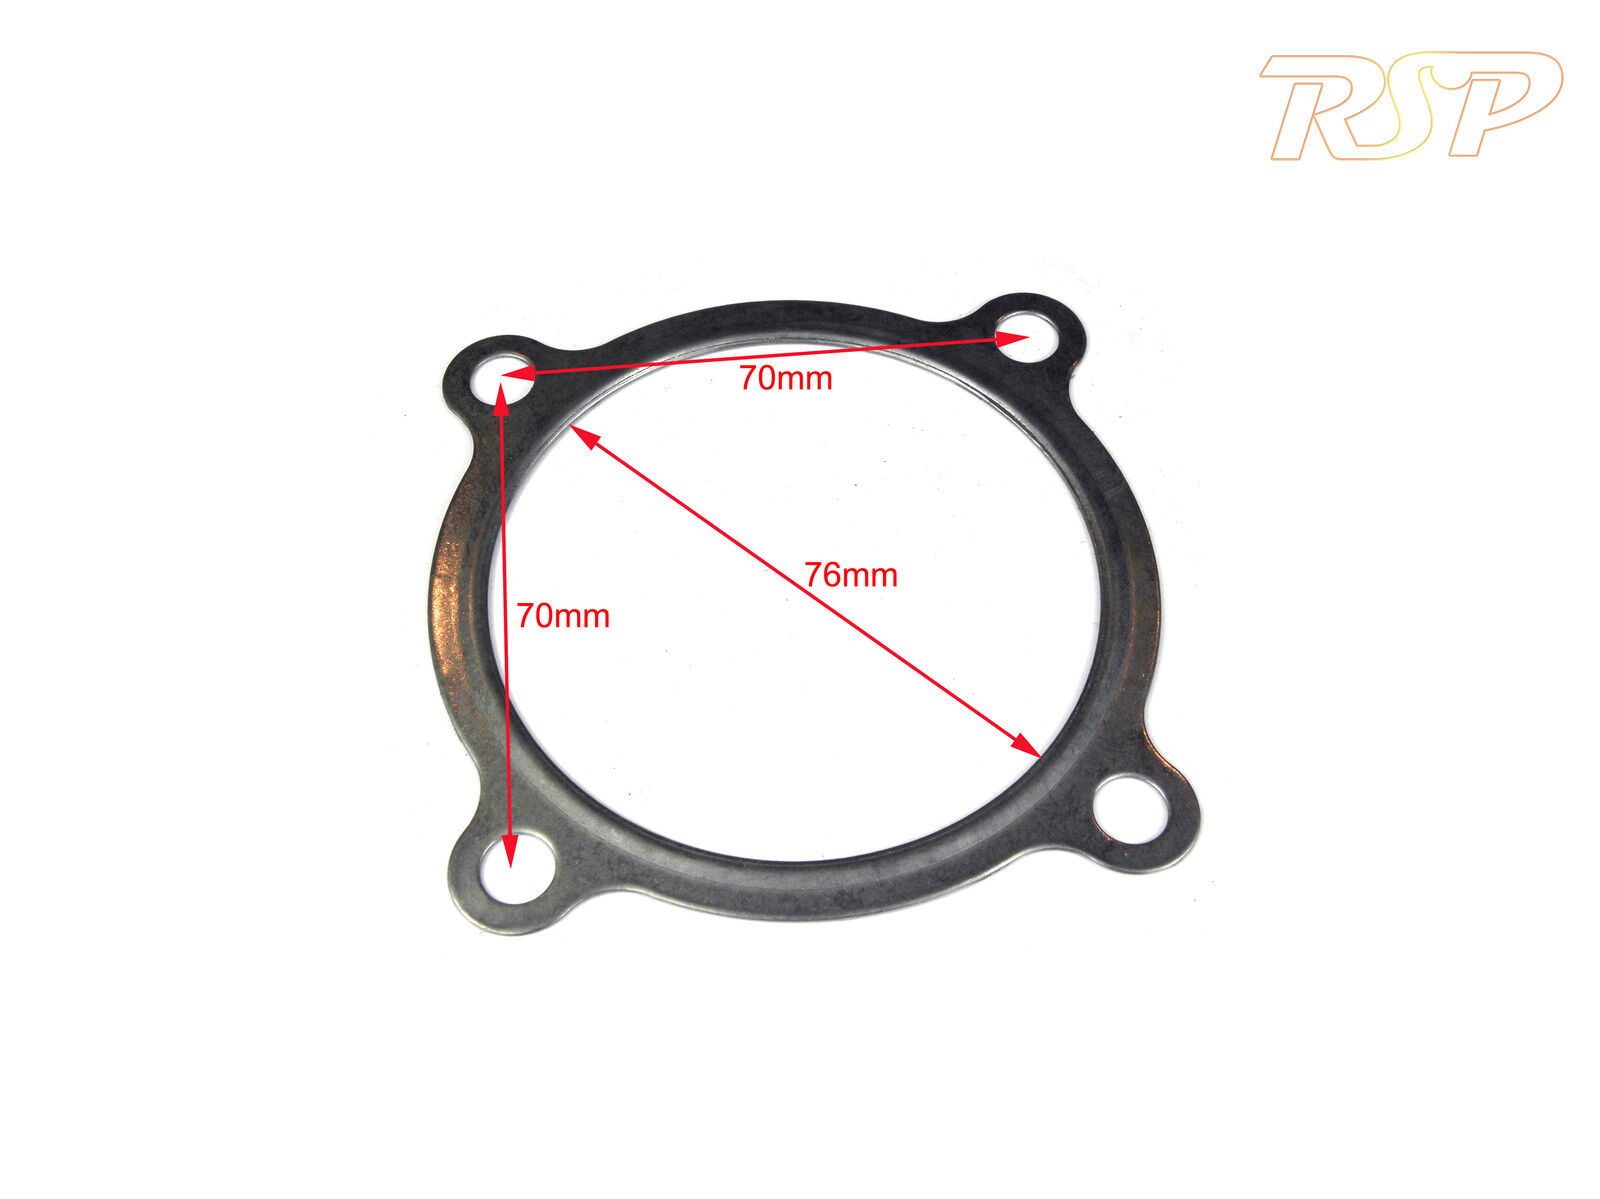 3 4 Bolt Turbo Downpipe Stainless Steel Gasket Fits Gt30